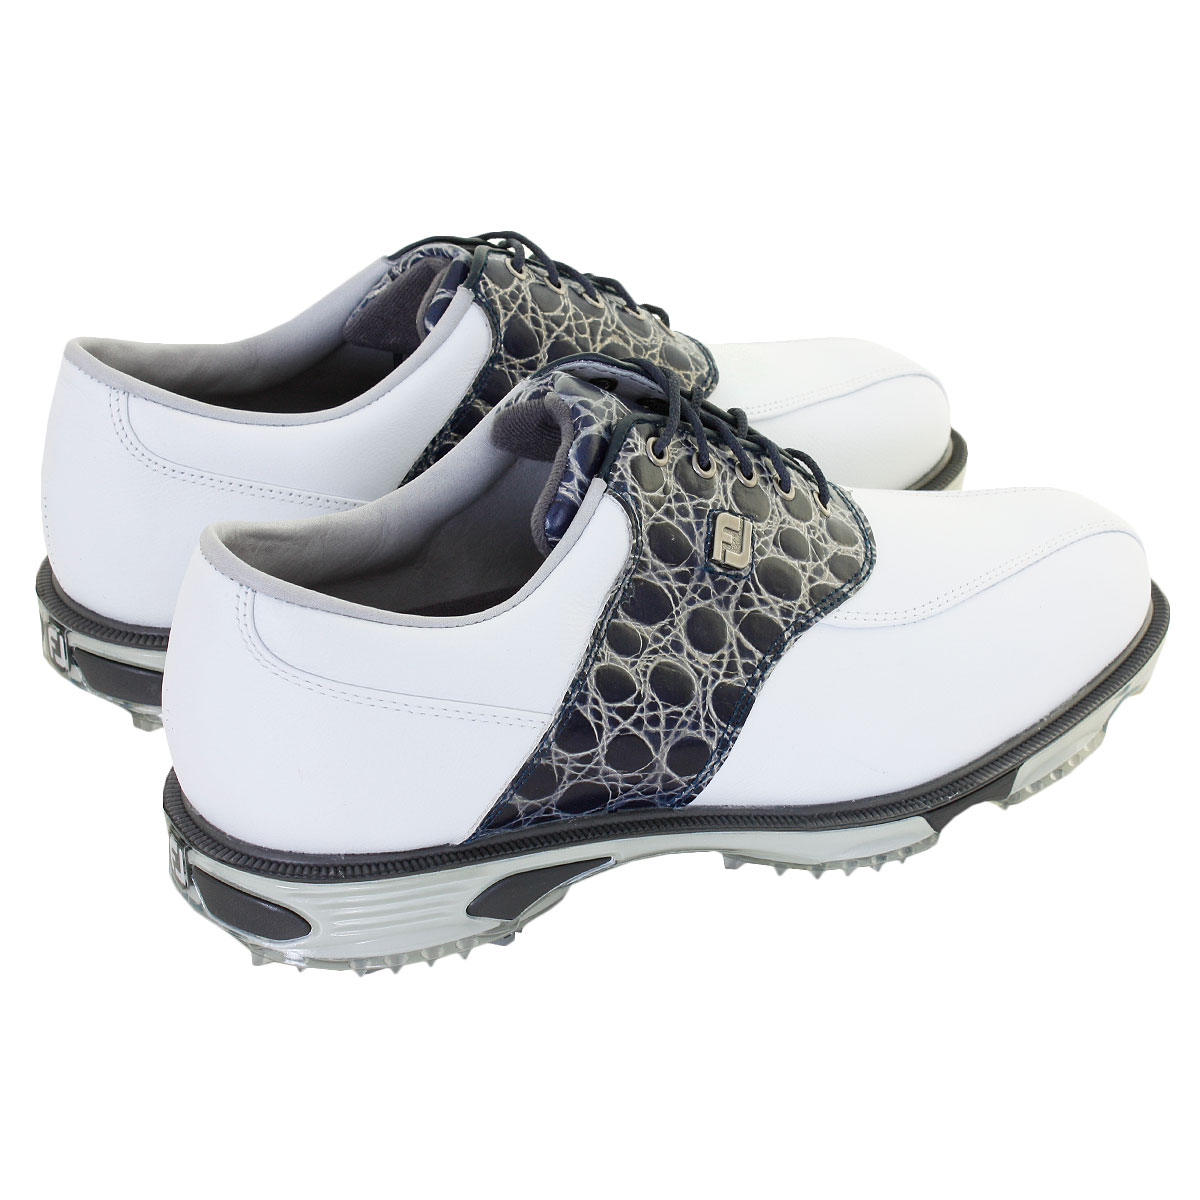 Footjoy-Mens-DryJoys-Tour-Golf-Waterproof-Spiked-Golf-Shoes-53-OFF-RRP thumbnail 19